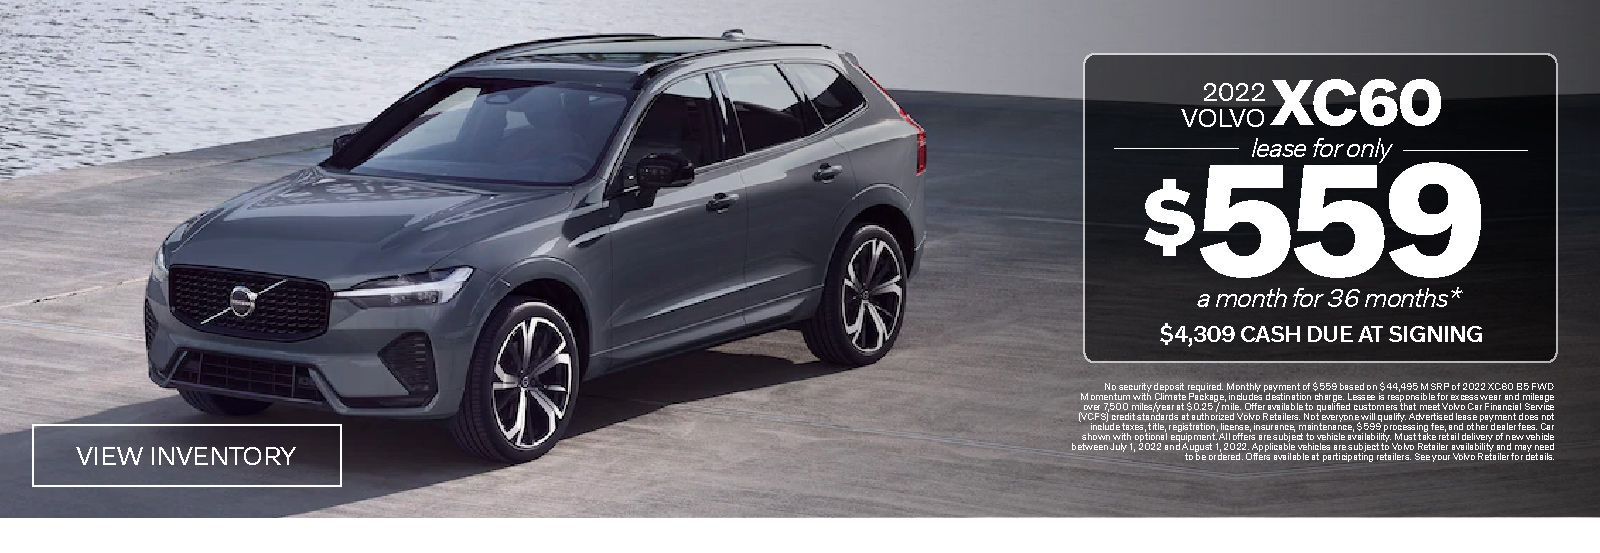 Holiday Safely. New 2021 Volvo XC60 T5 Momentum. Lease for Only $415 a month for 36 months* $4165 due at signing. View Inventory. *No security deposit required. Monthly payment of $415 based on $43,445 MSRP of 2021 XC60 T5 FWD Momentum with Heated Front Seats and Heated Steering Wheel, includes destination charge and application of $1,500 Lease Bonus. Lessee is responsible for excess wear and mileage over 10,000 miles/year at $0.25 / mile. Advertised lease payment does not include taxes, title, registration, license, acquisition fee, insurance, maintenance, and $599 processing fees. Car shown with optional equipment. All offers are subject to vehicle availability. Must take delivery of new vehicle between December 1, 2020 and January 4, 2021.